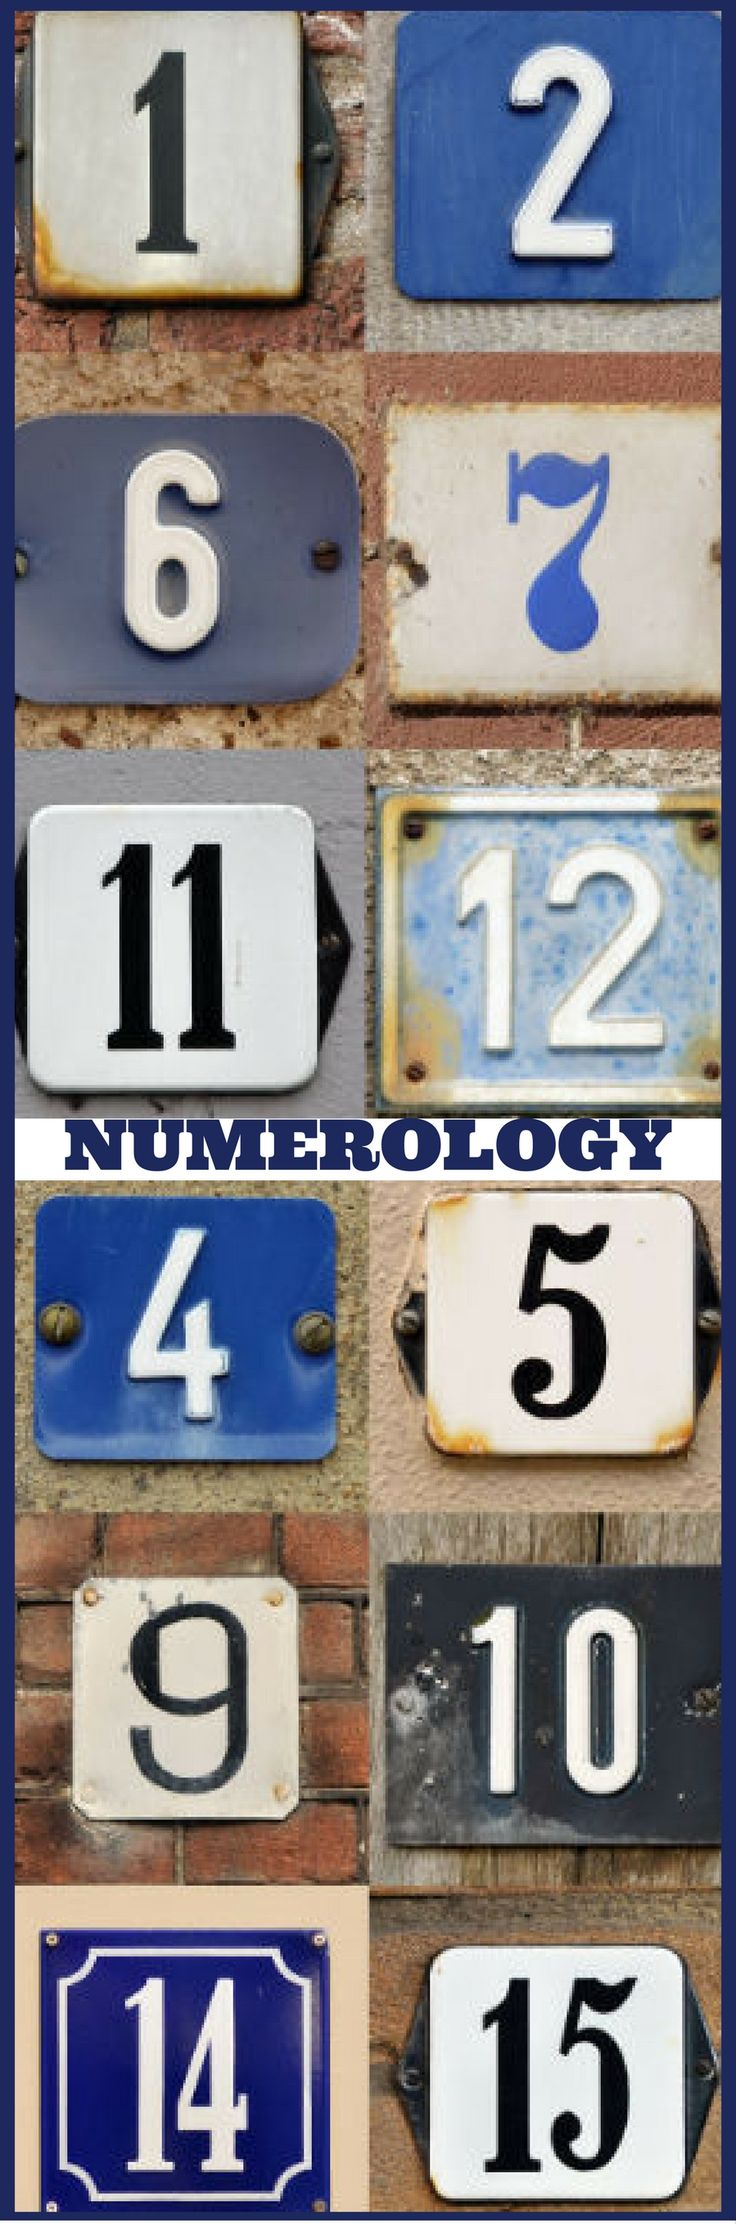 Numerology Can Give You A Blueprint Of The Best Way To Live Your Life. Http